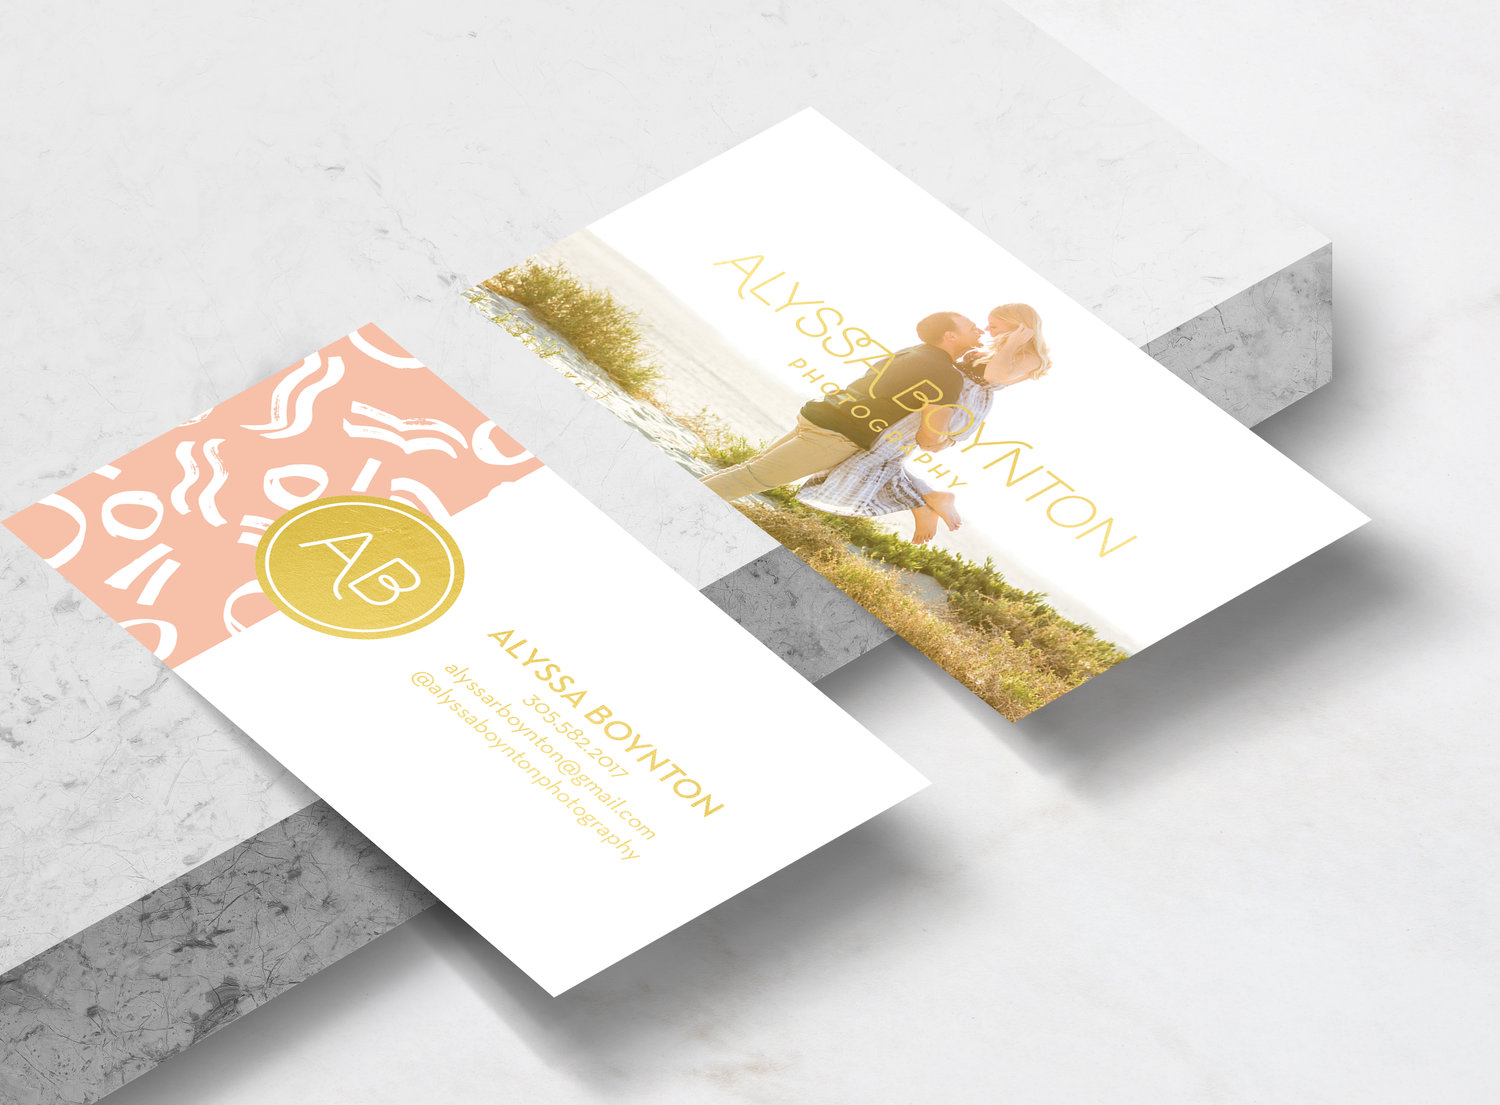 Pretty fun playful whimsical modern contemporary clean feminine girly pink peach coral salmon business cards for a wedding photographer, designed by Gretchen Kamp in San Diego. To view the full business branding project, click here: http:.//www.gretchenkamp.com/alyssa-boynton-photography